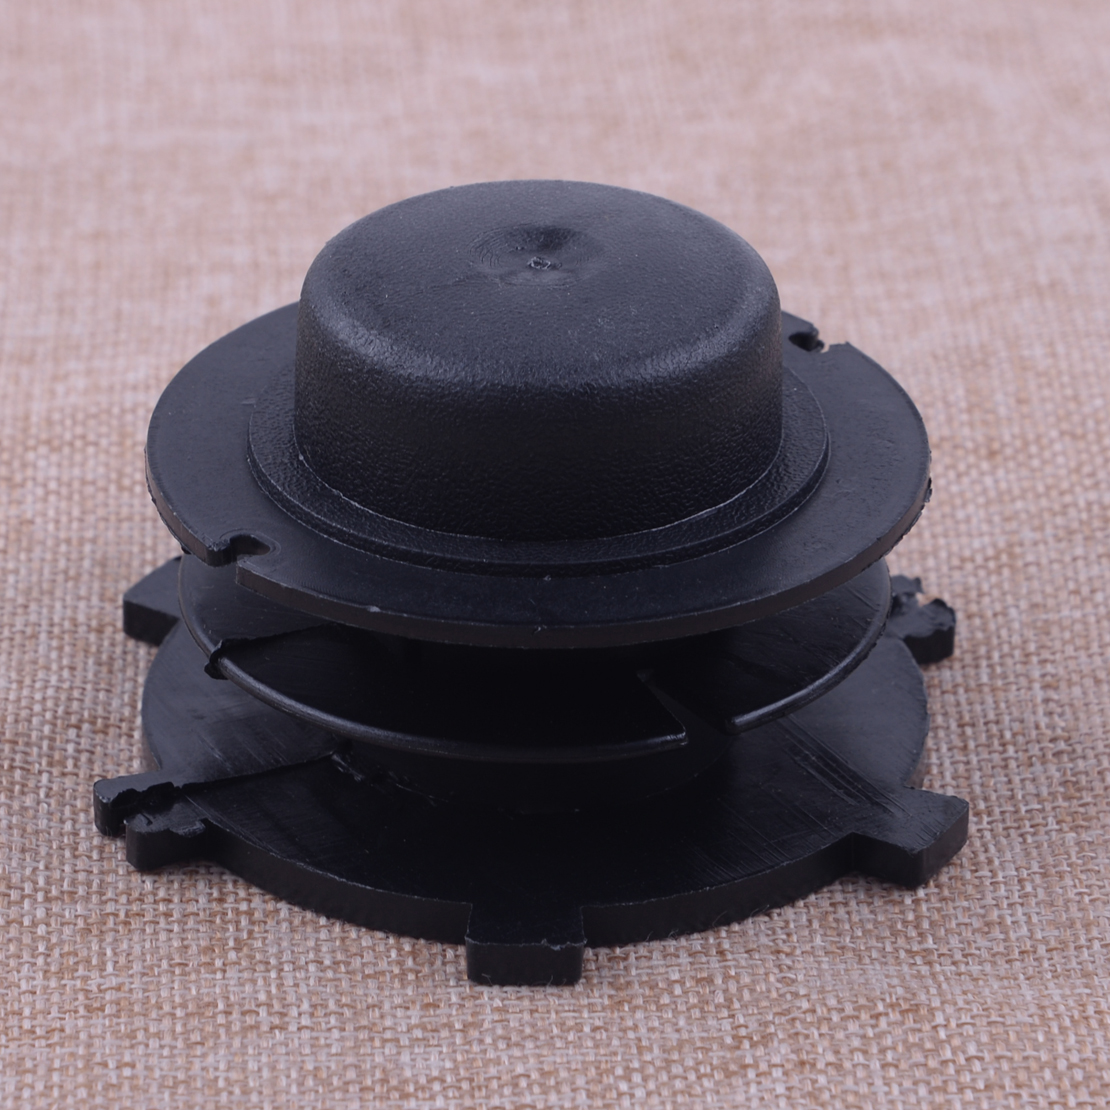 LETAOSK New Black Trimmer Head Spool Cover Replace 4002-713-3017 Fit For Autocut 25-2 STIHL FS44 FS55 FS80 FS83 FS85 FS90 FS100